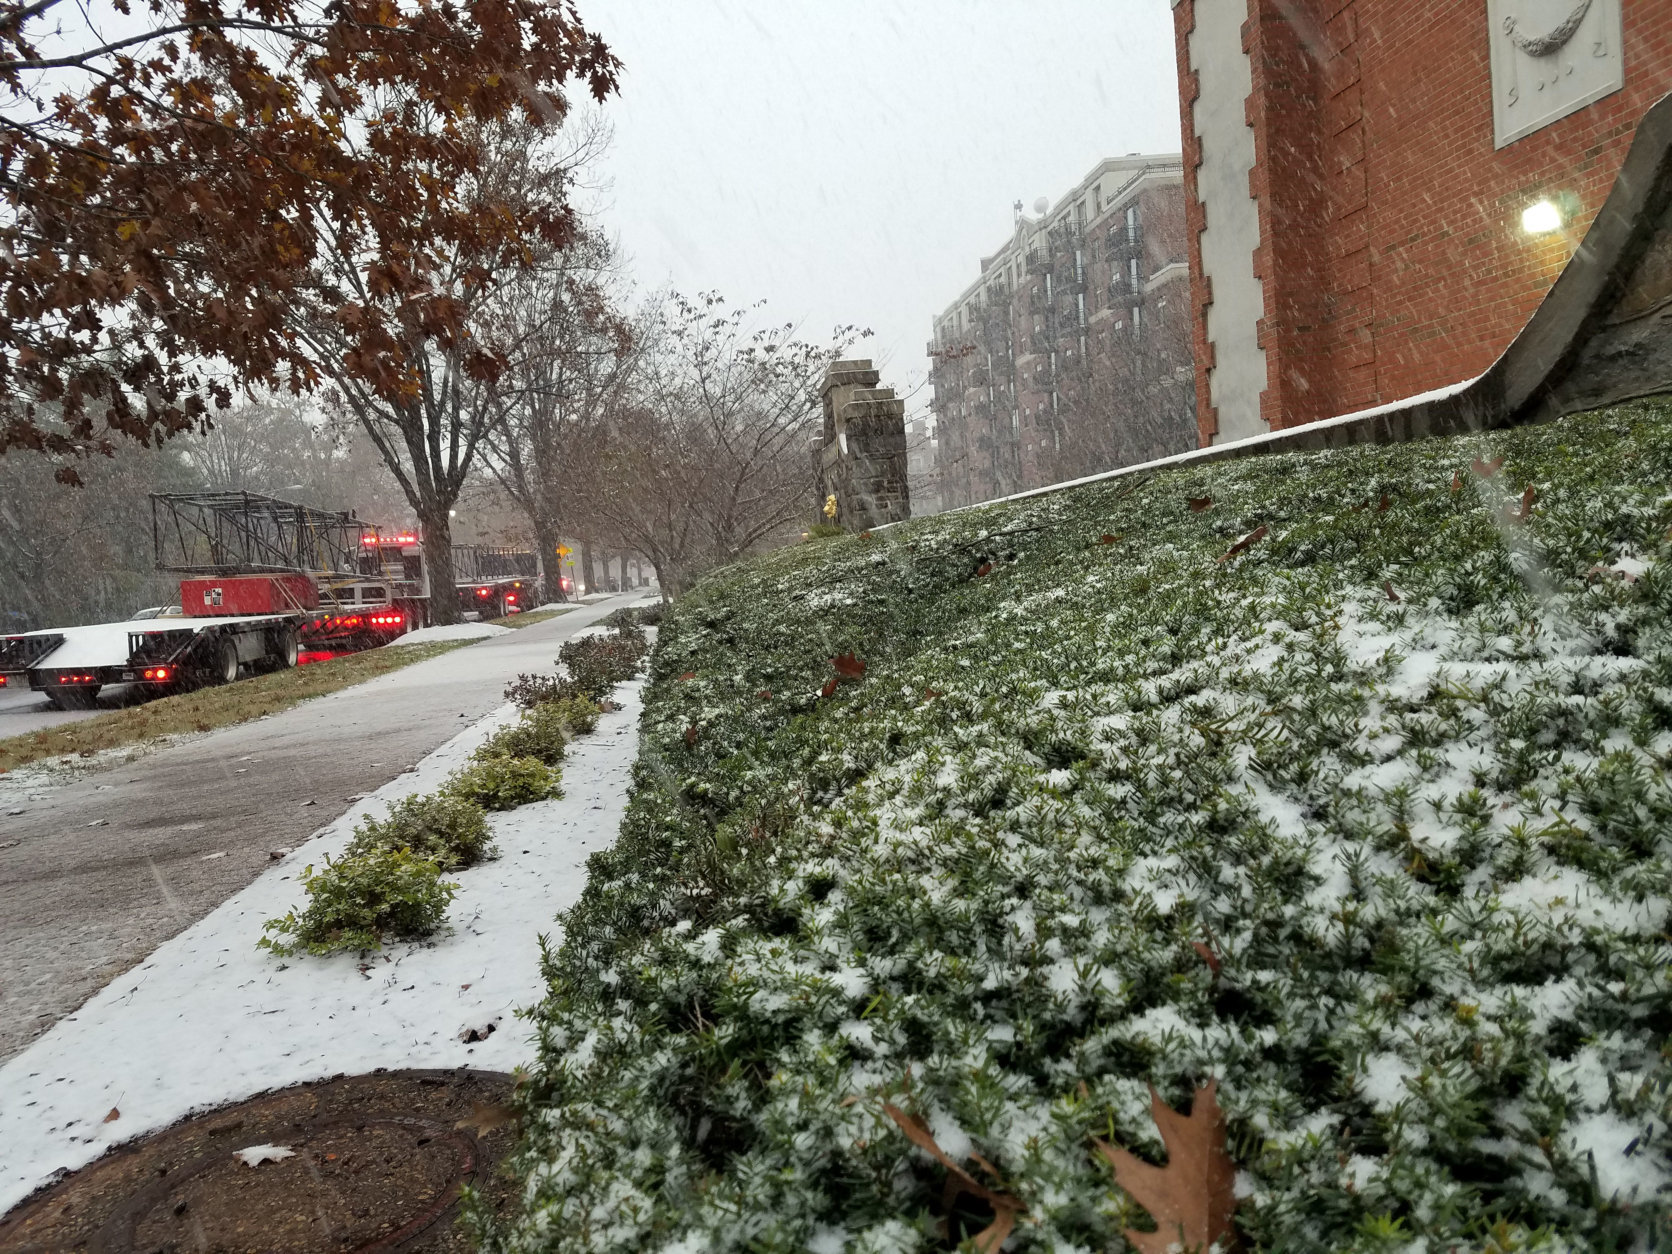 Snow collects along the streets and bushes in Northwest D.C. (WTOP/Will Vitka)